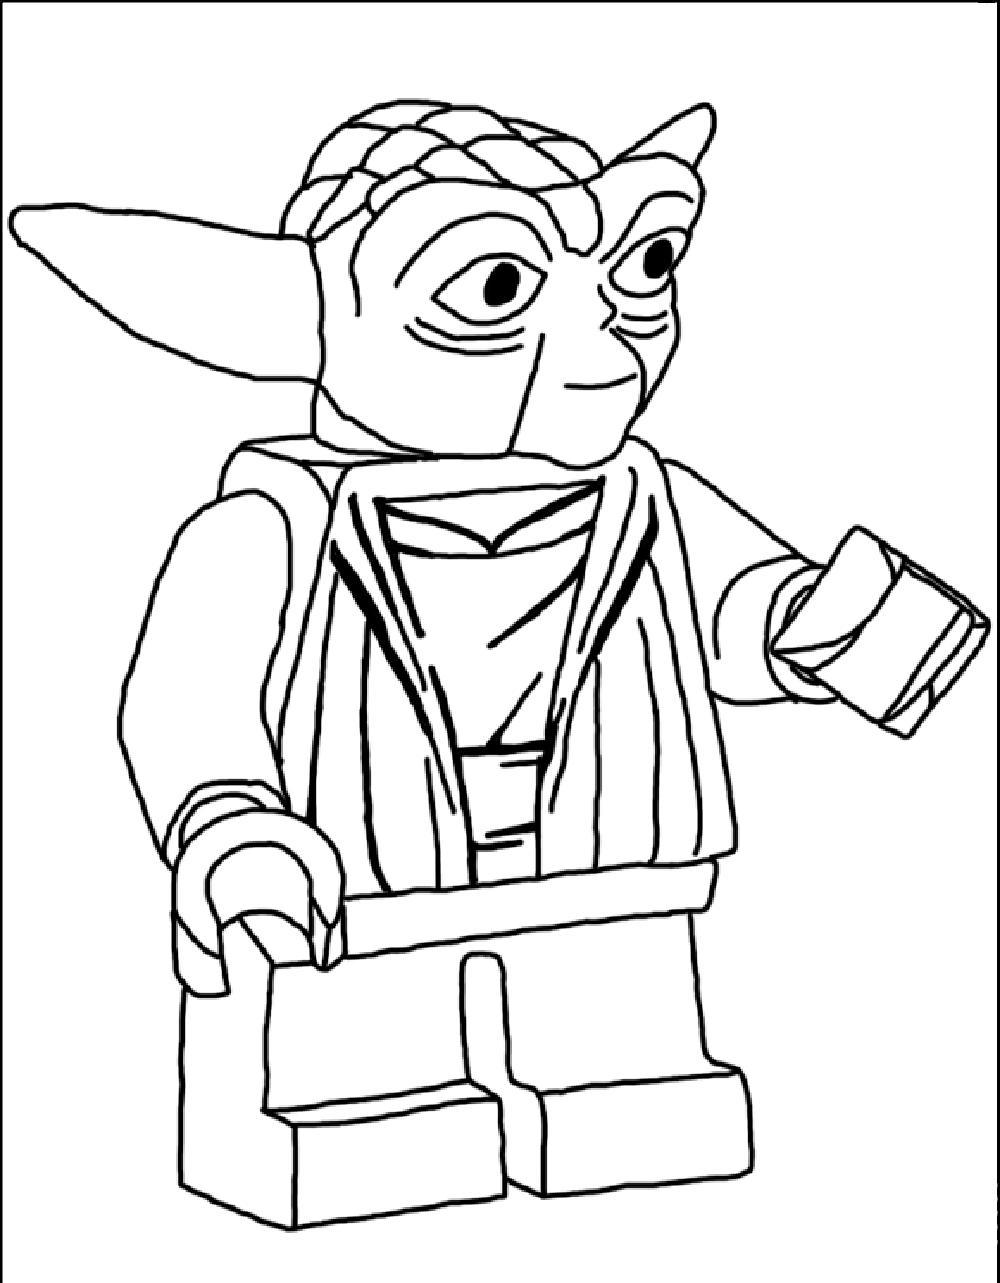 lego colouring in lego ninjago coloring pages best coloring pages for kids colouring lego in